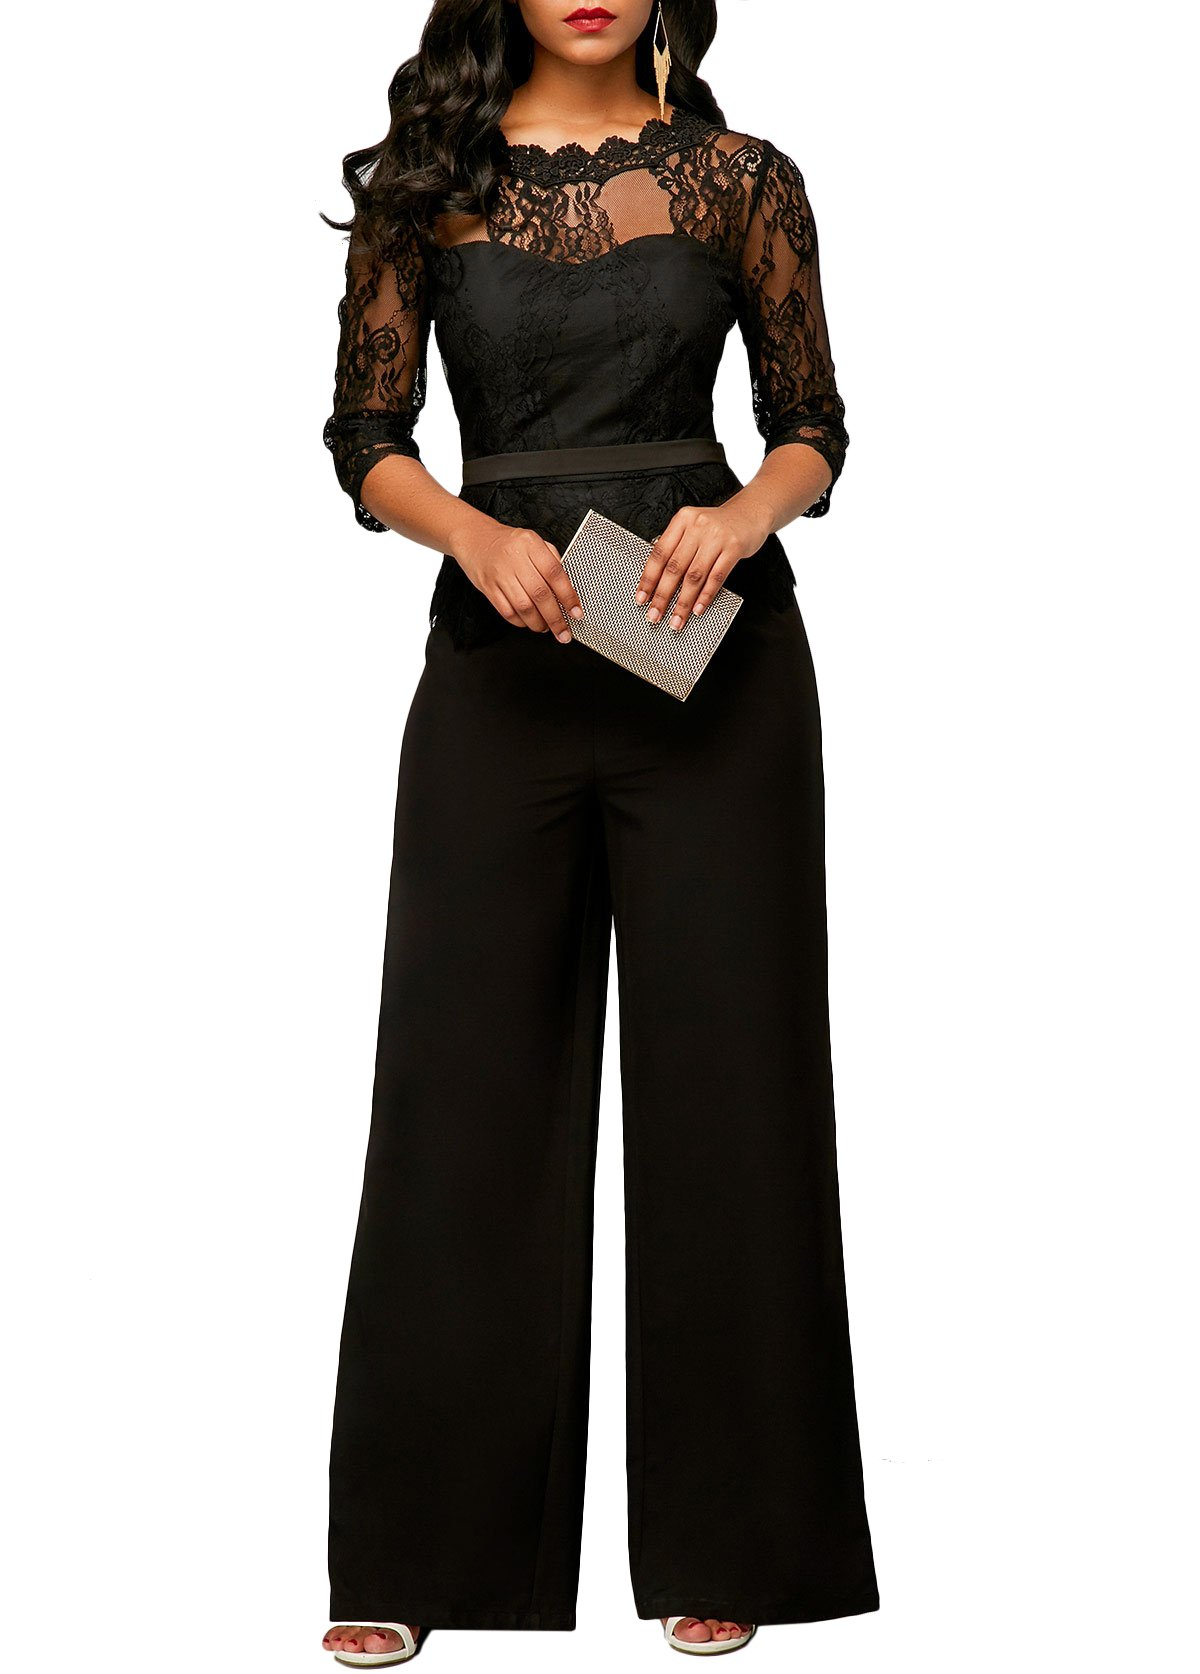 Voghtic Women Long Sleeve Lace Top and Wide Leg Pants Jumpsuit Rompers for Party